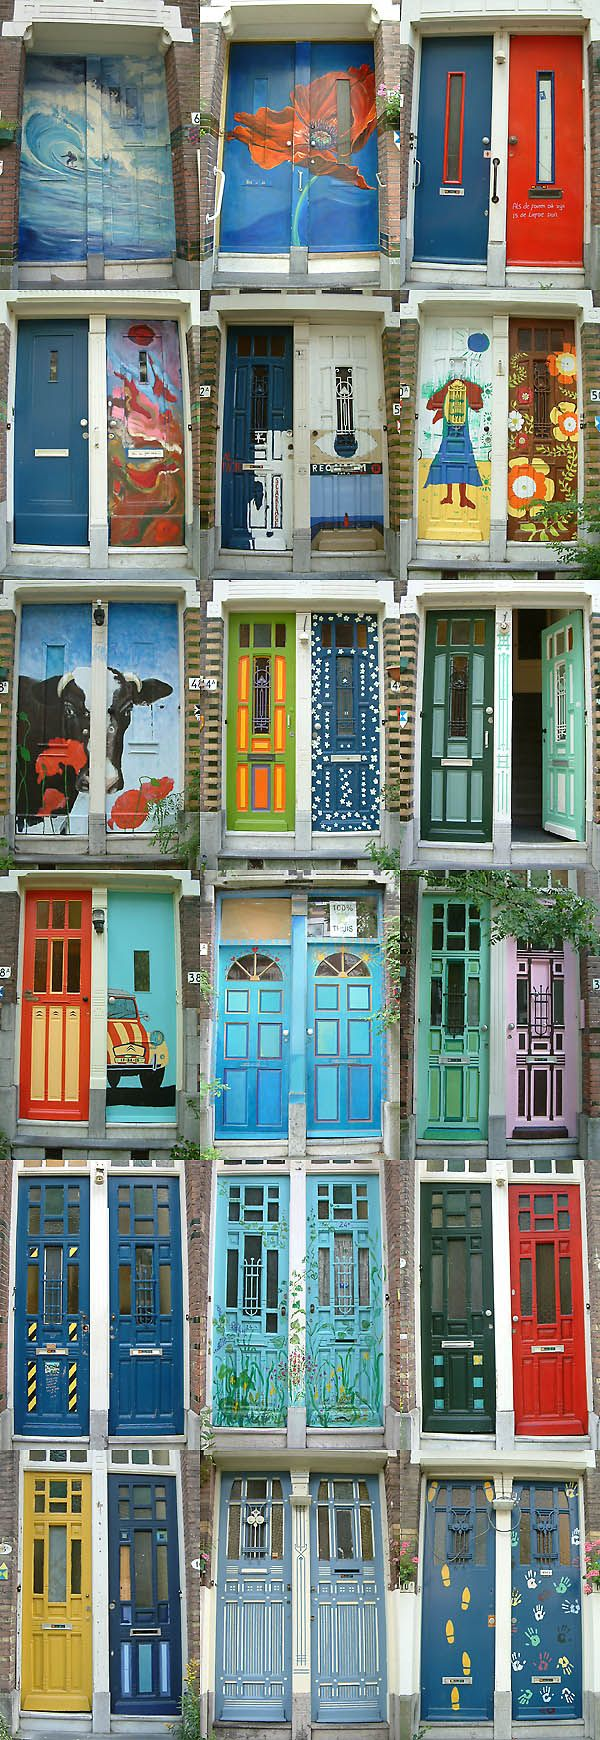 One street. Many, many different doors. (Zwaerdecroonstraat, Rotterdam, The Netherlands)